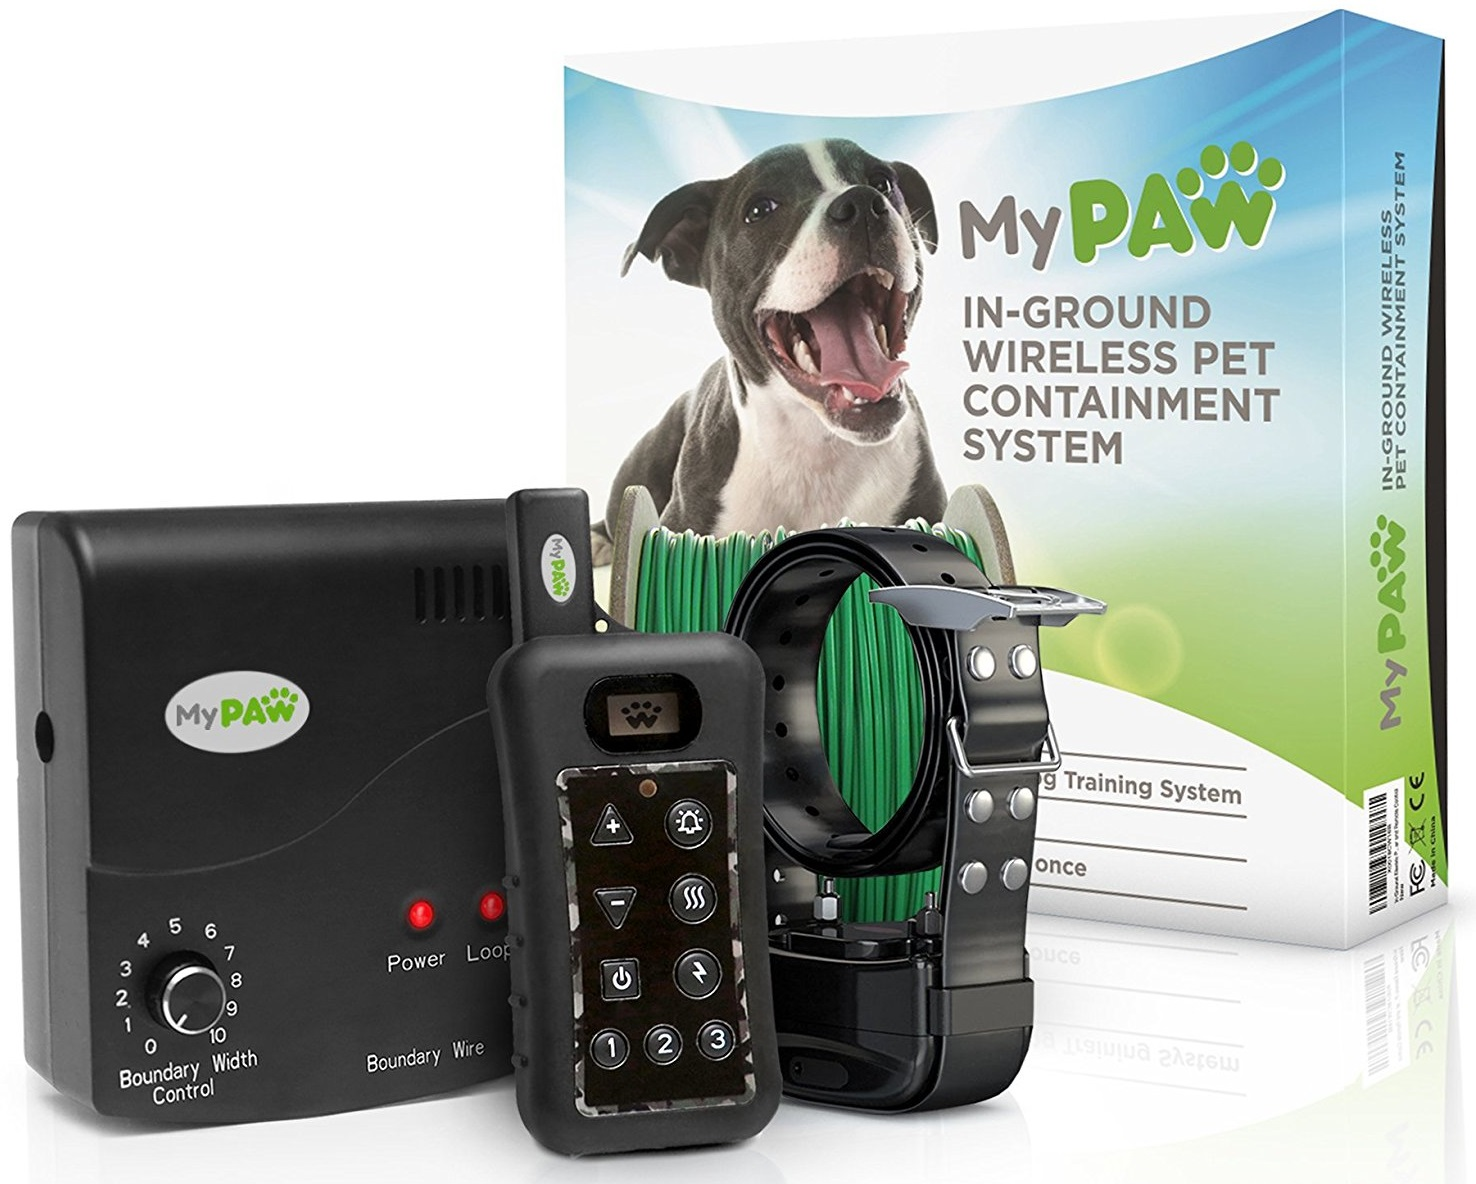 My Paw In Ground Electric Pet Containment System Review